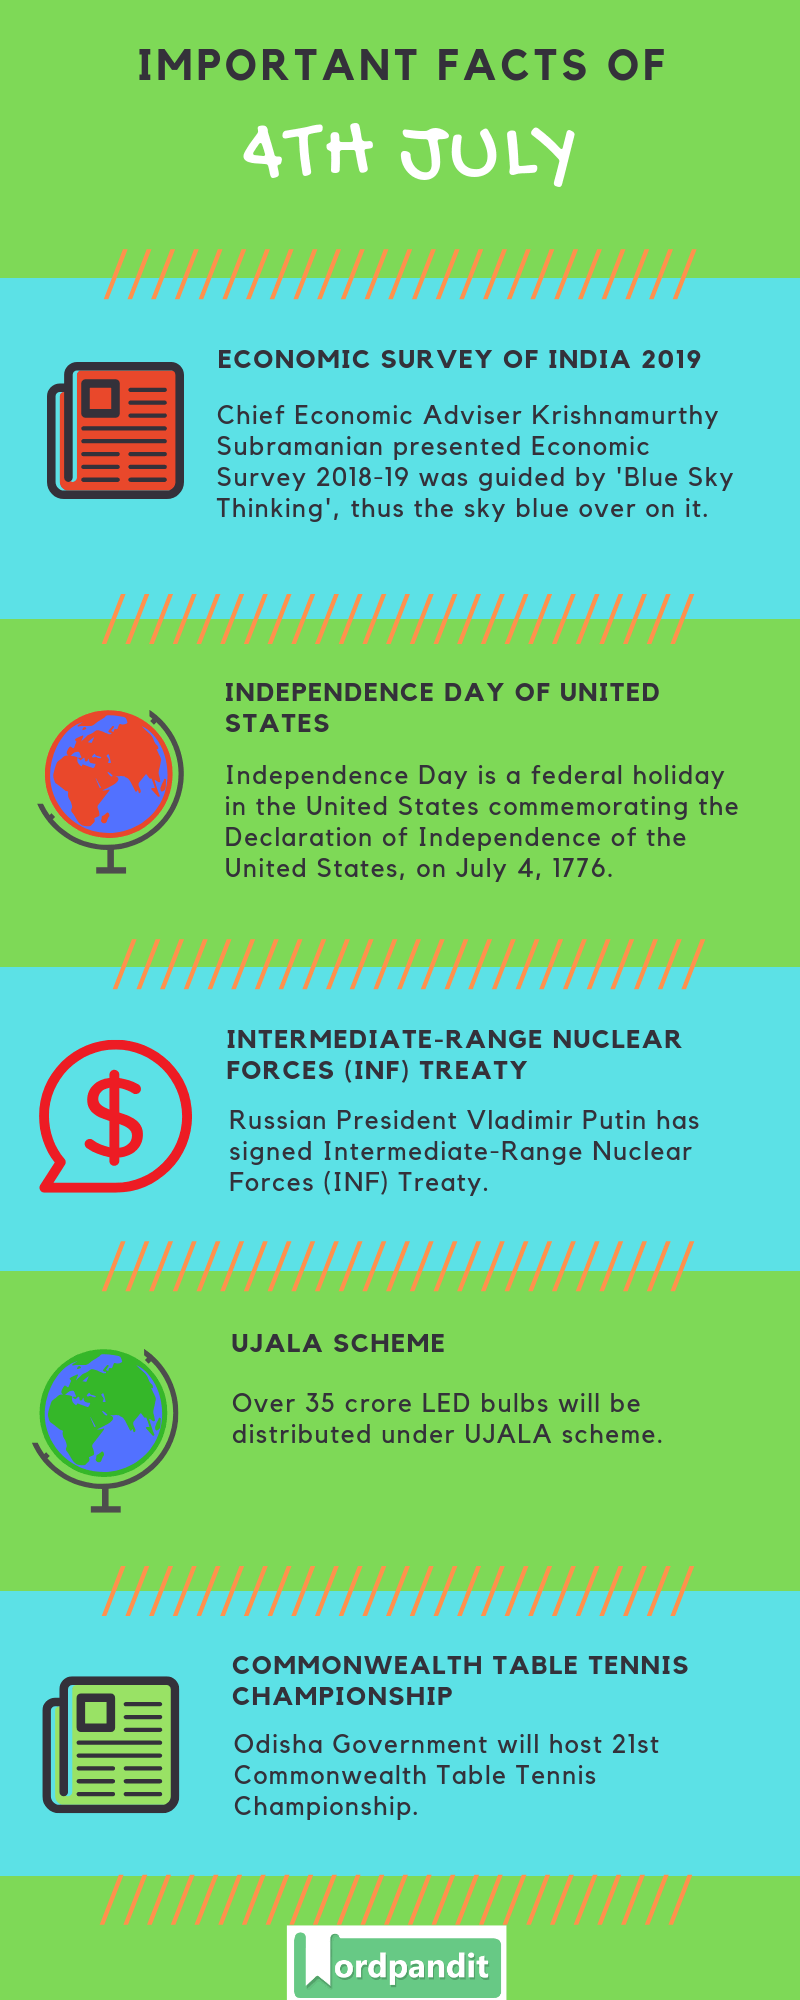 Daily Current Affairs 4 July 2019 Current Affairs Quiz 4 July 2019 Current Affairs Infographic